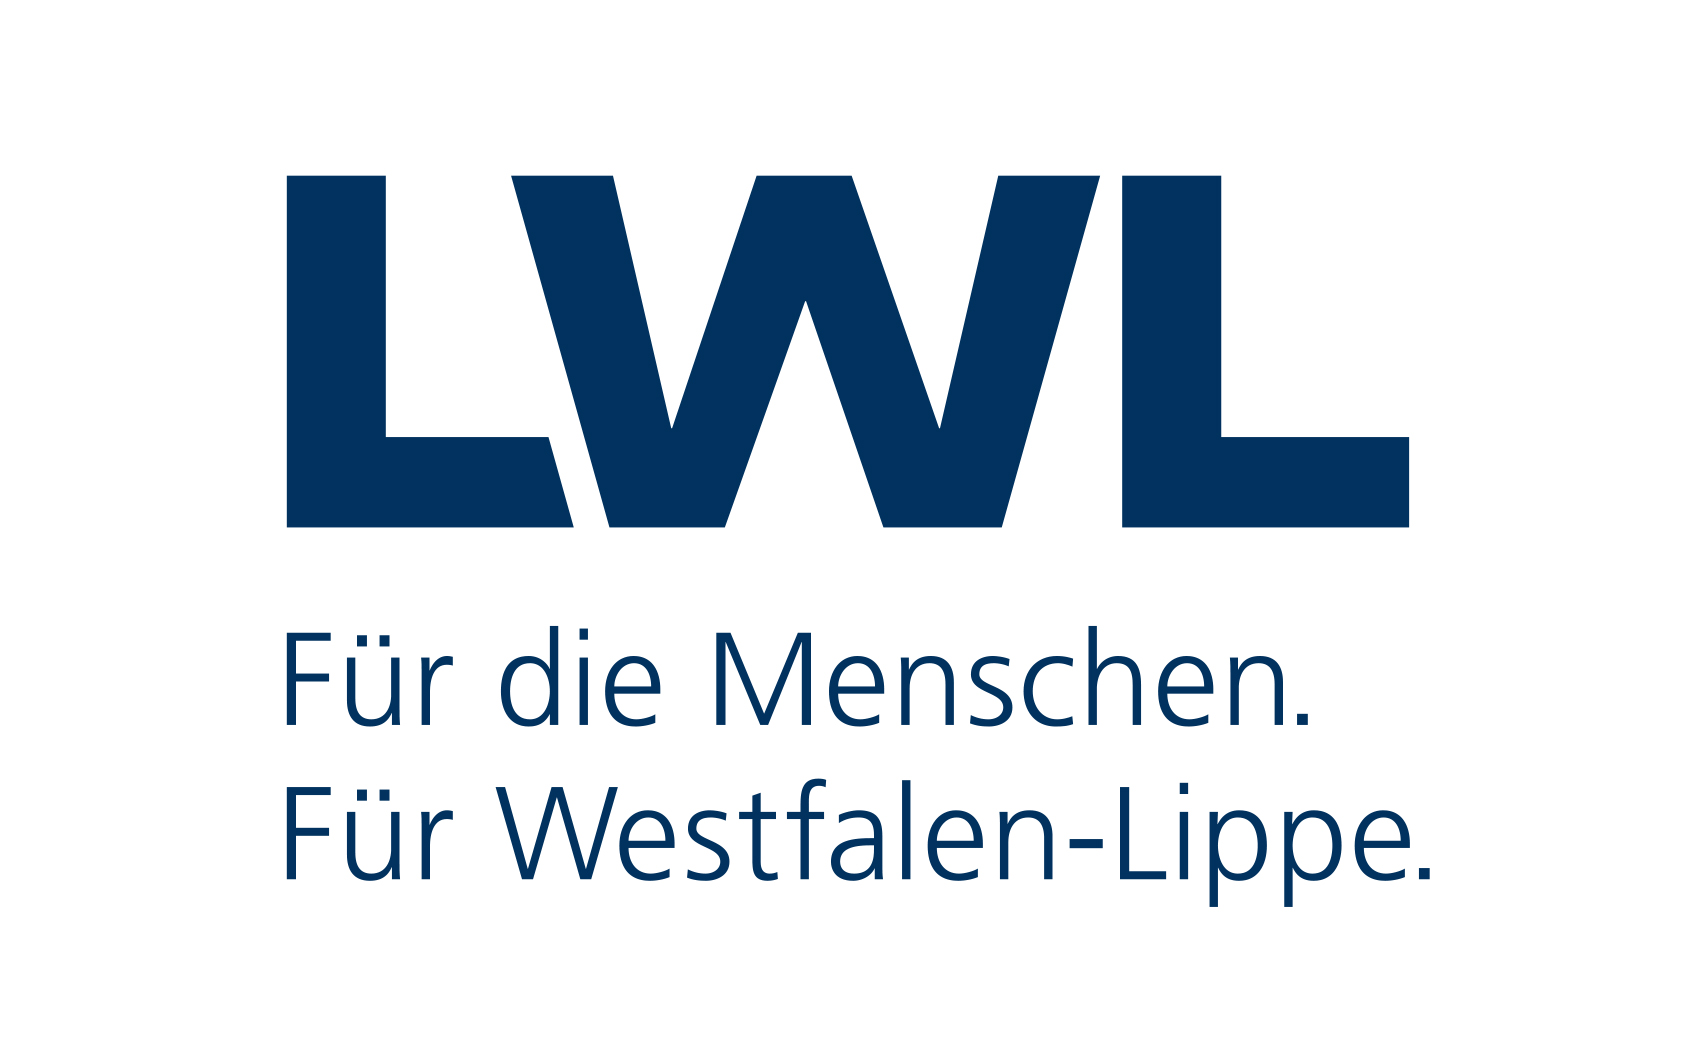 https://www.cd.lwl.org/023cd-download/download/1_Logos/2015/Logos/Screen/LWL-Logo_blau_RZ.jpg